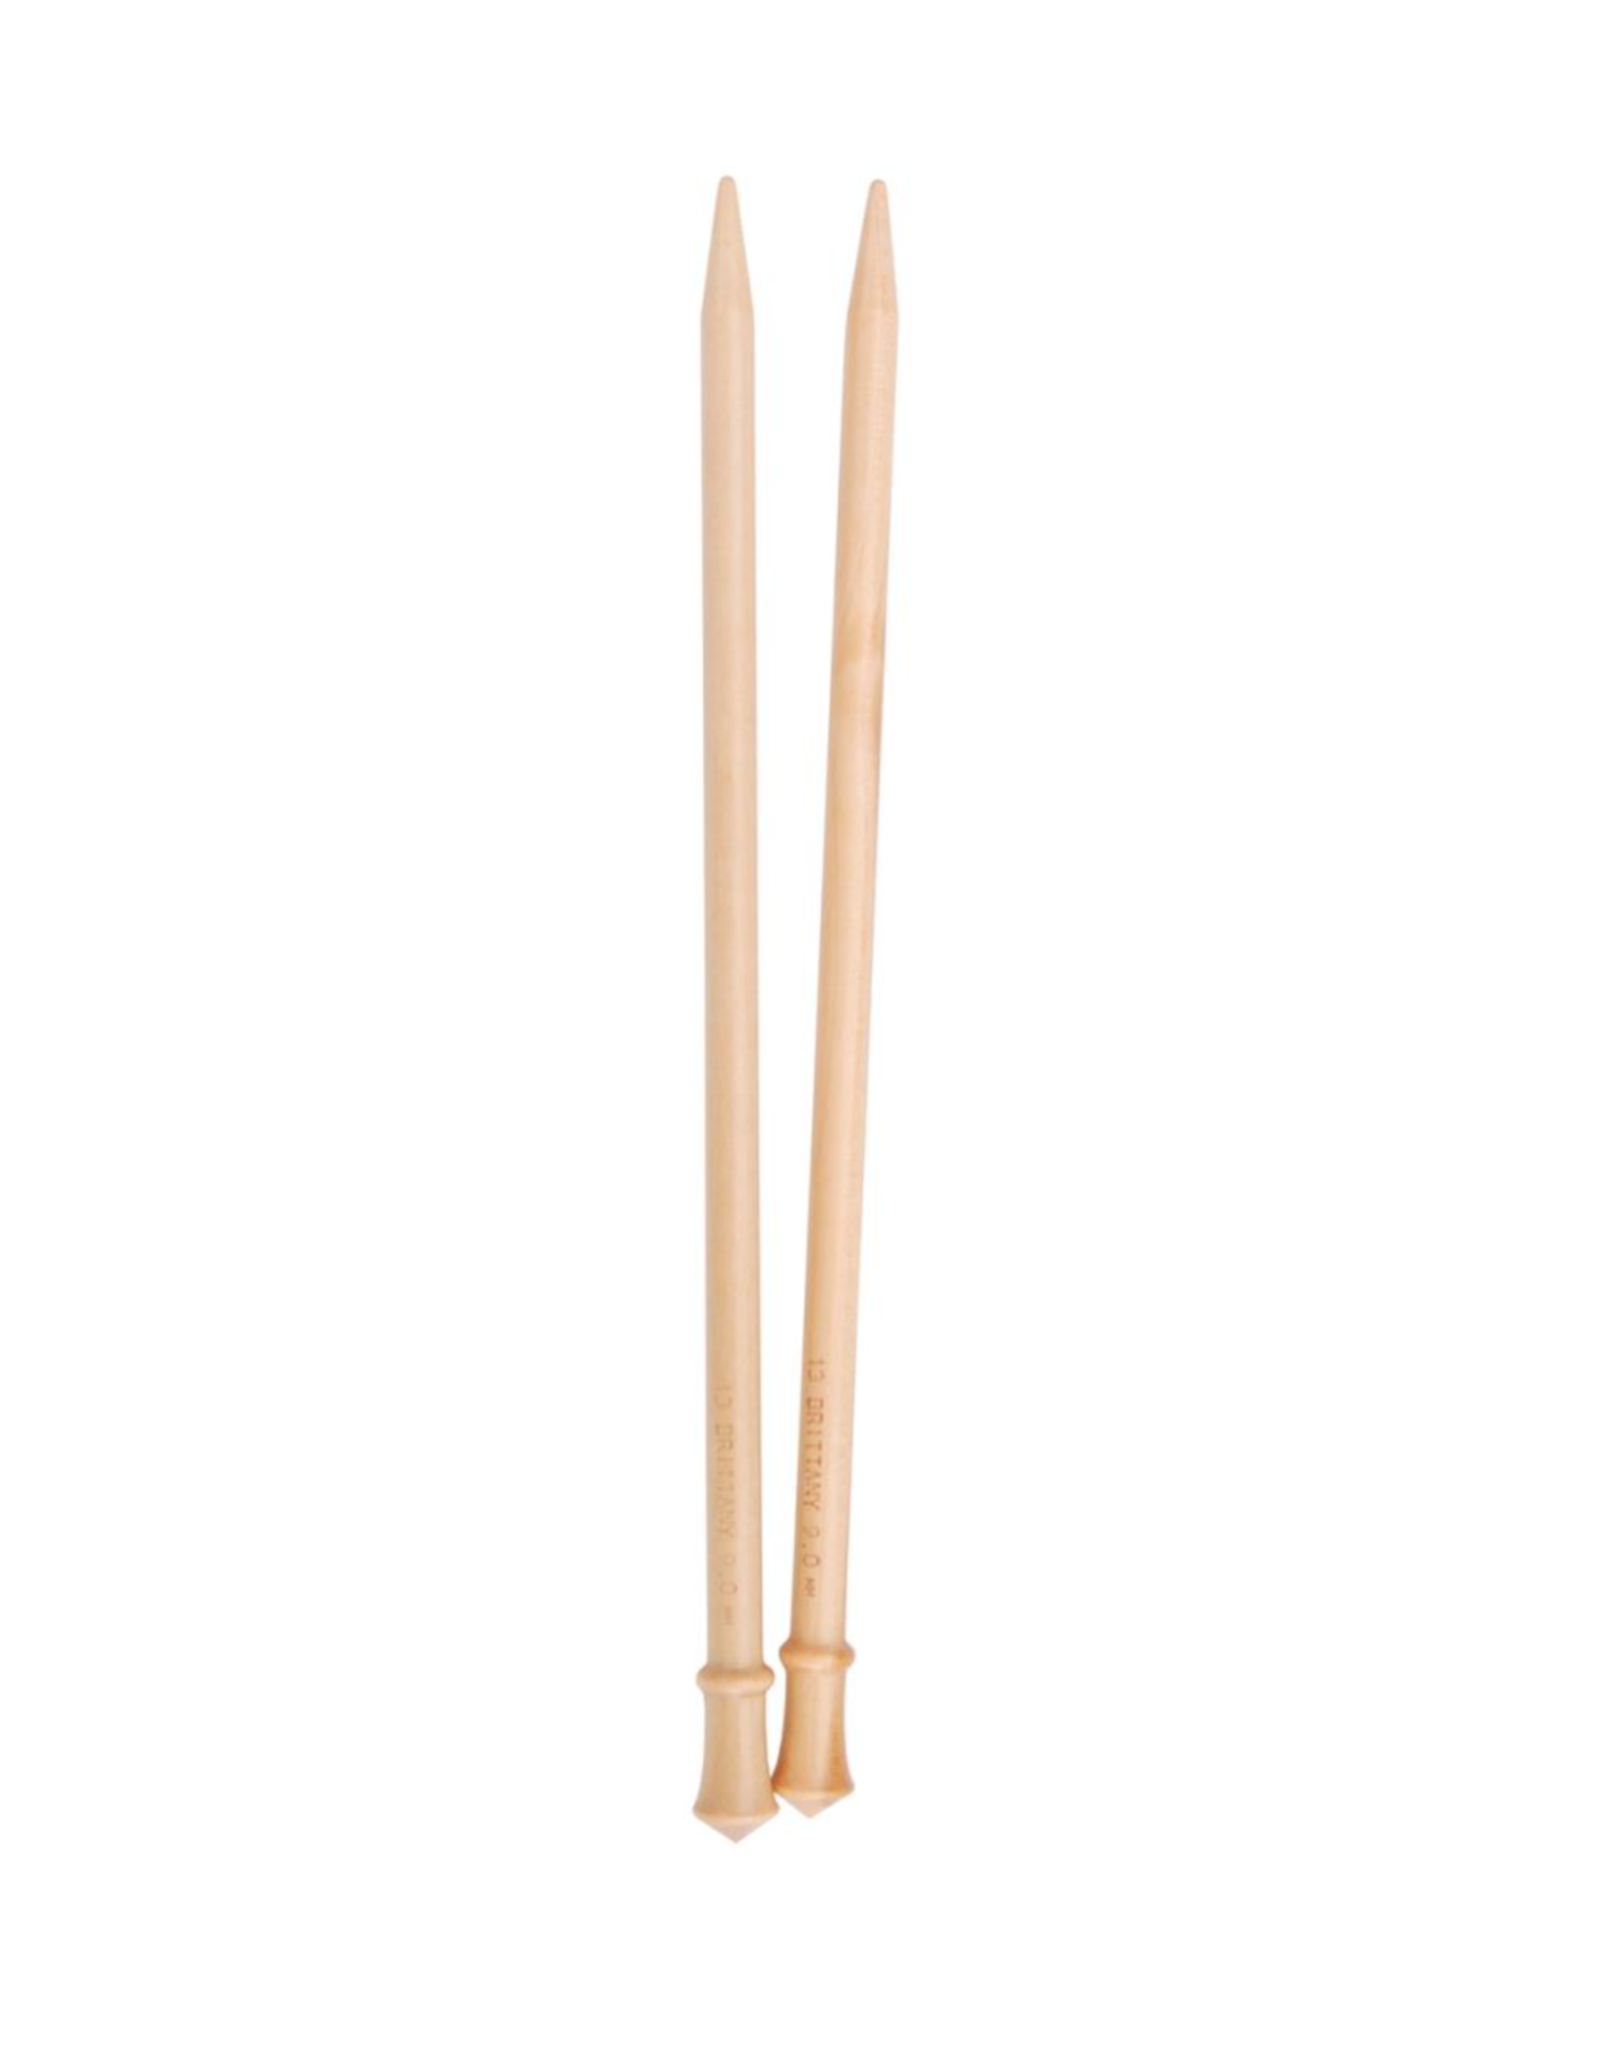 "Brittany 10"" long straight needles, size US 7"